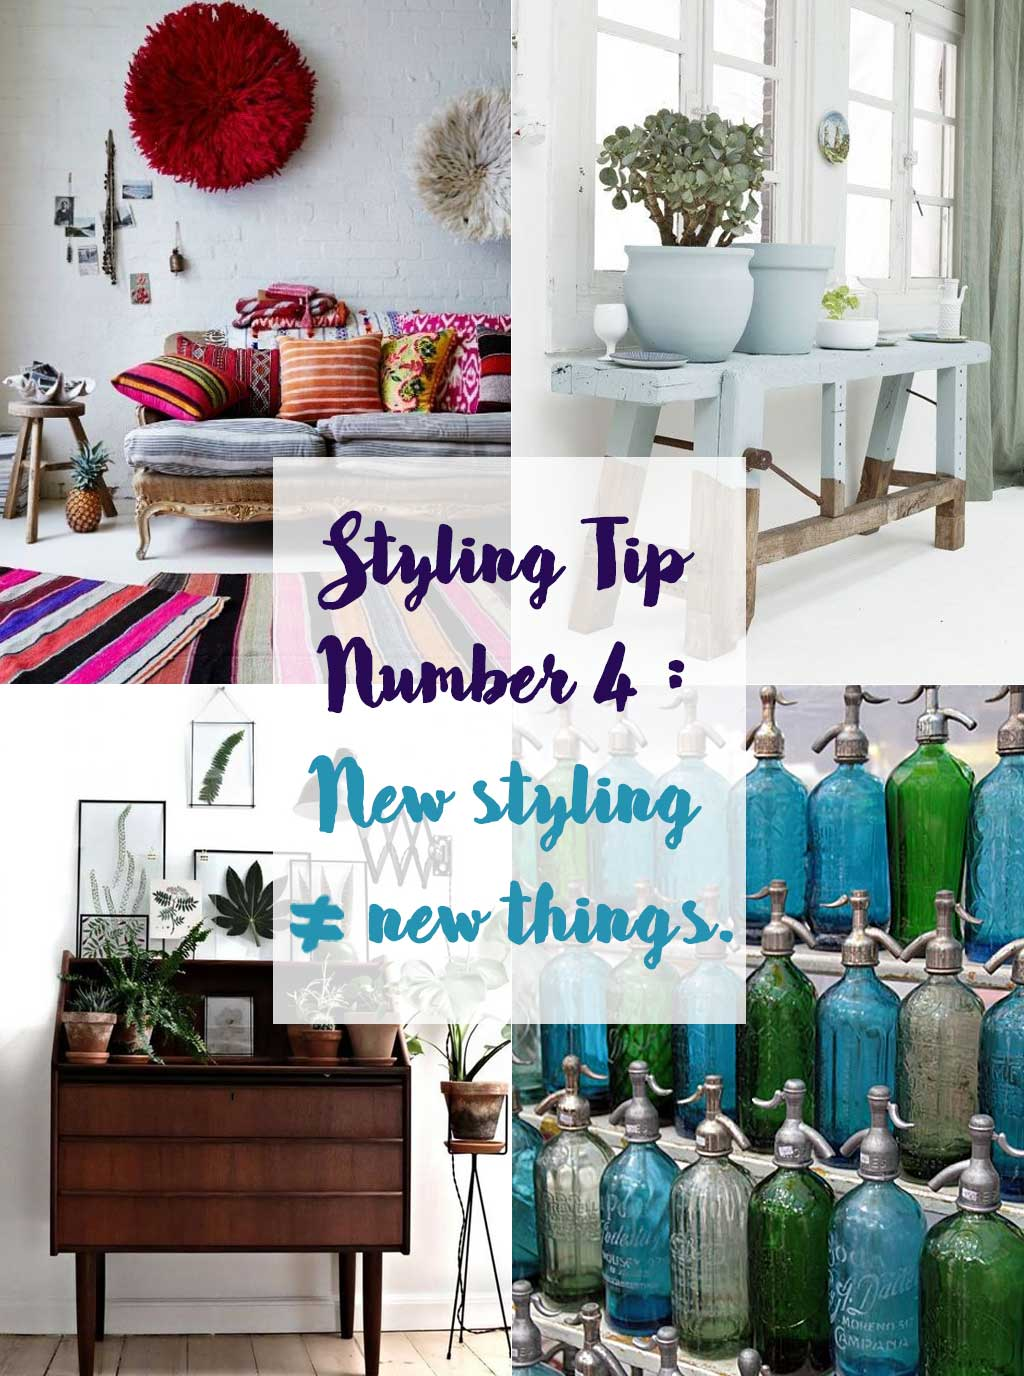 Styling Tip Number 4 New Styling doesn't mean new things - Interior Design - Hutsly